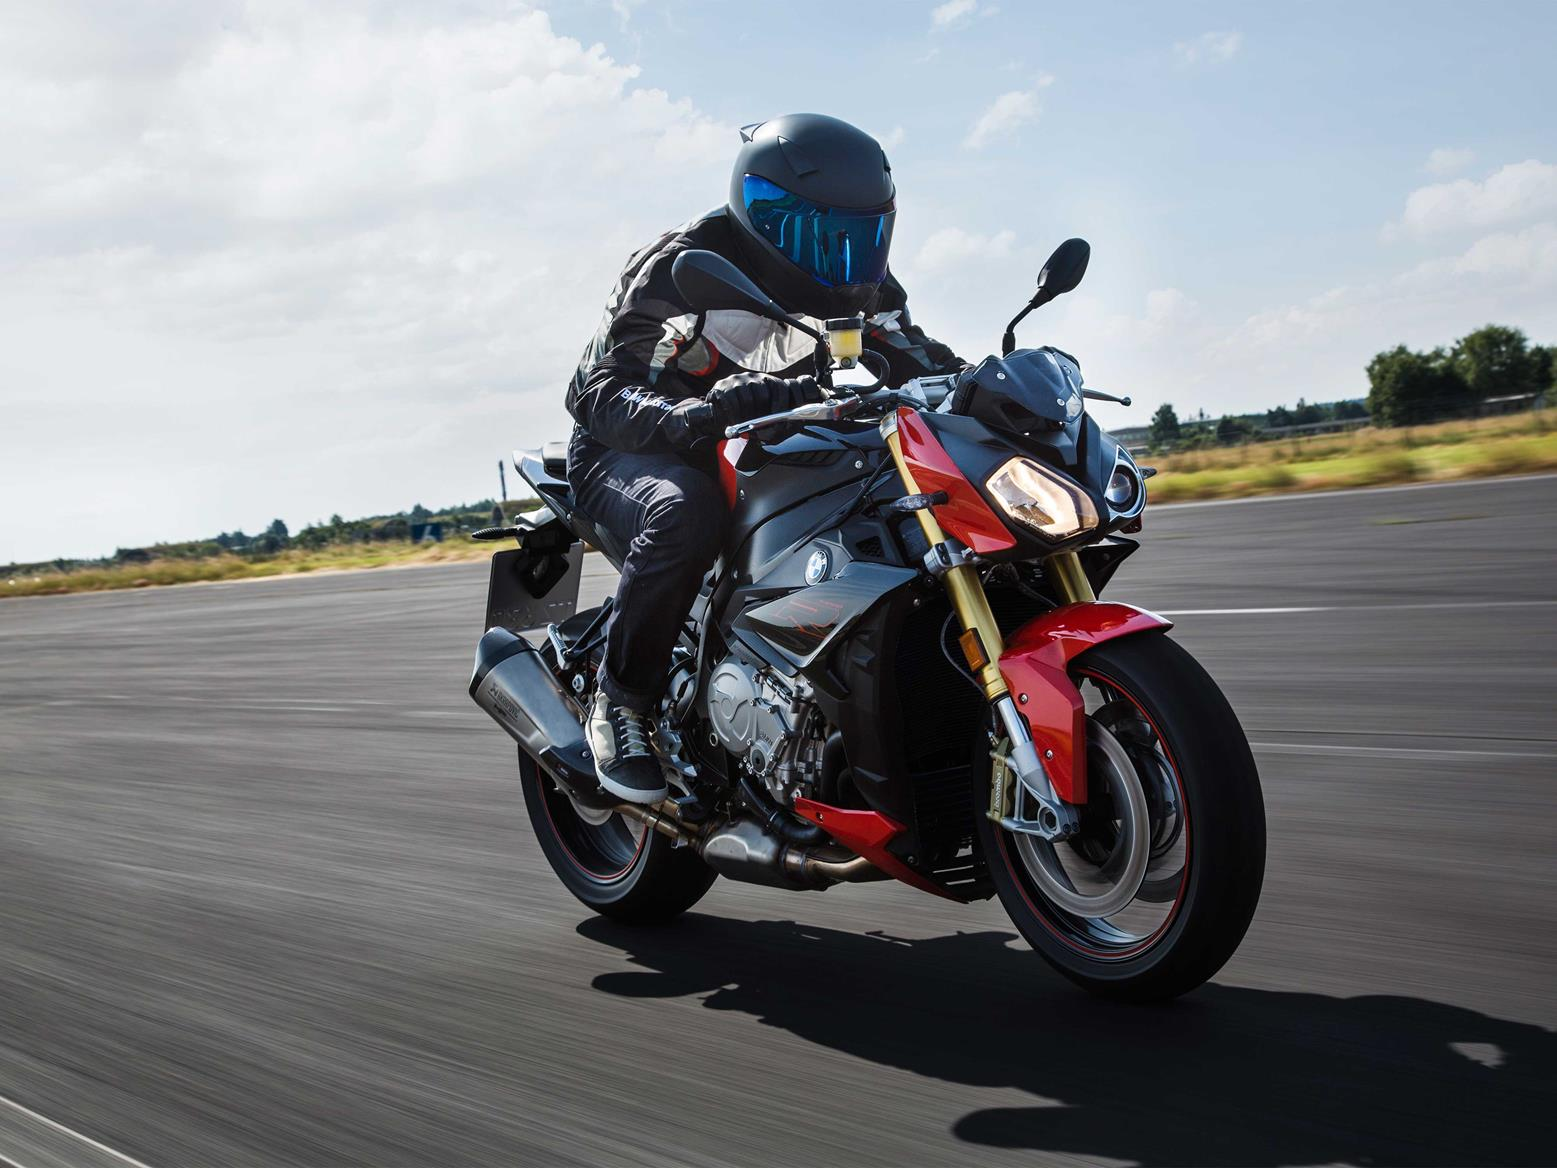 The BMW S1000R is a beast of a bike